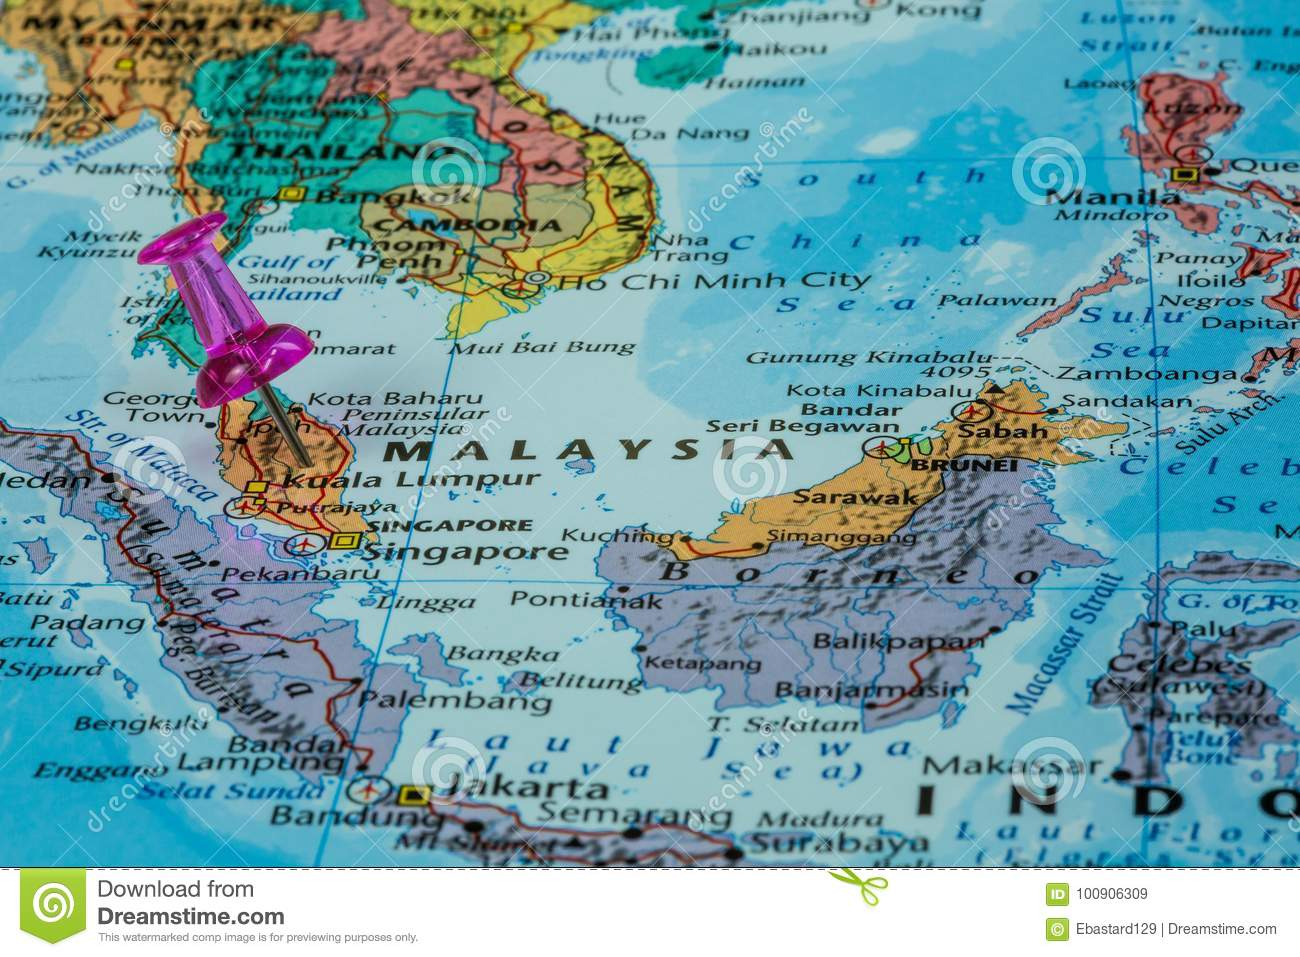 Map of malaysia stock image image of book city europe 100906309 map of malaysia gumiabroncs Choice Image